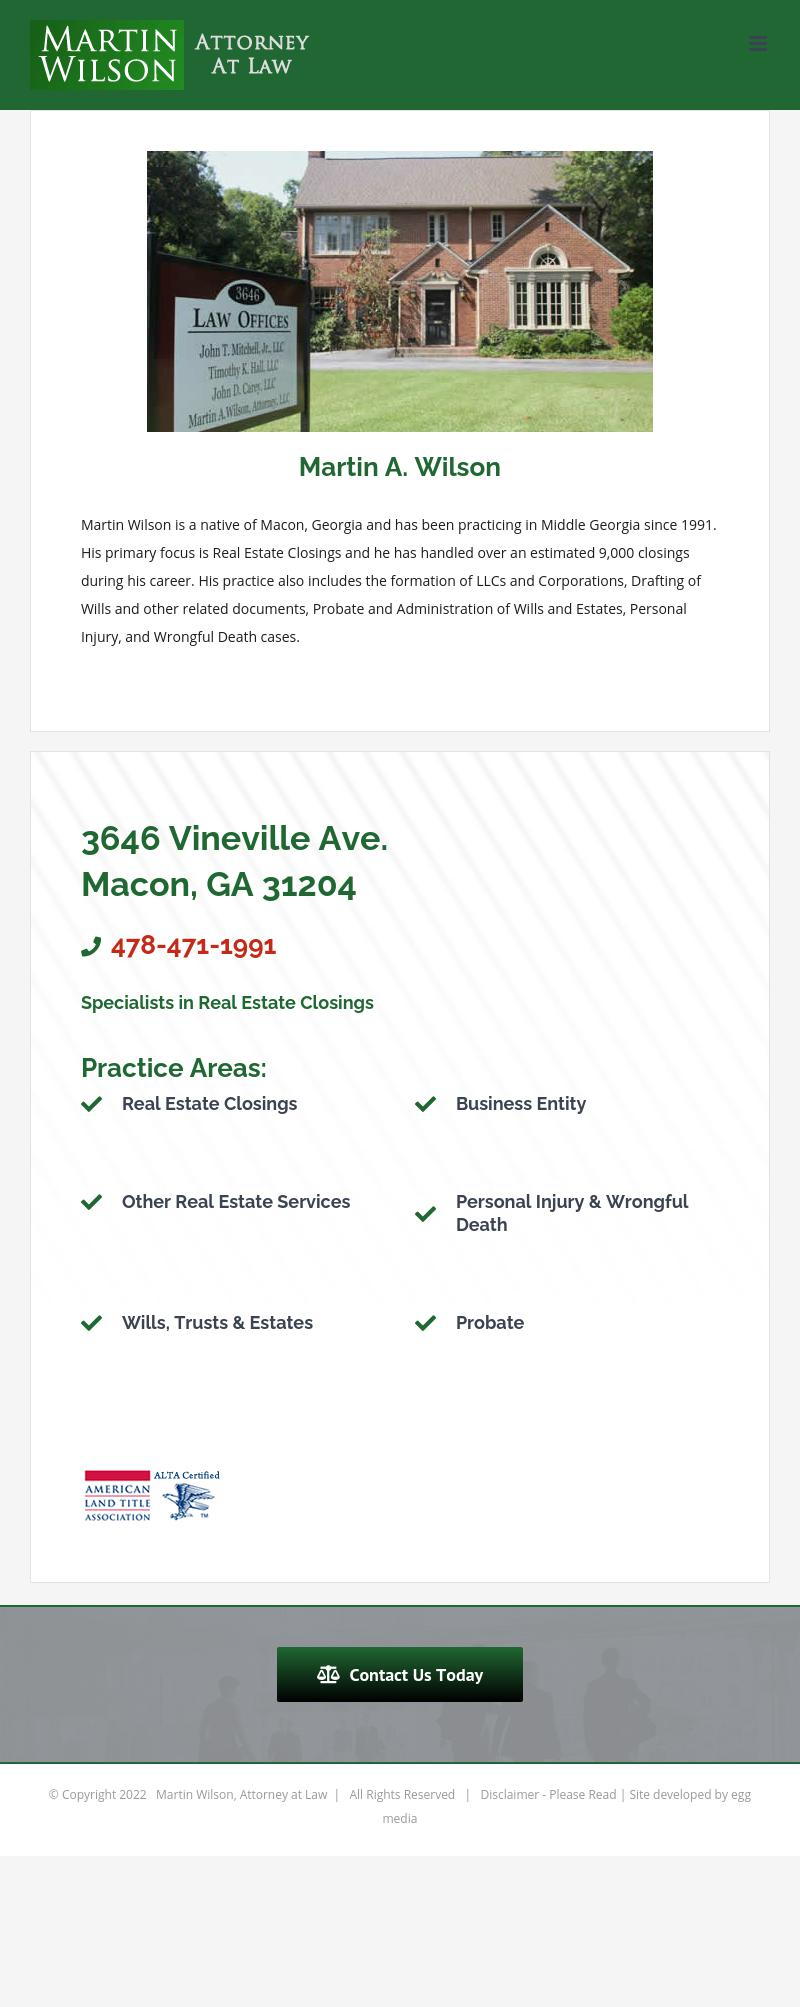 Martin Wilson, Attorney at Law - Macon GA Lawyers